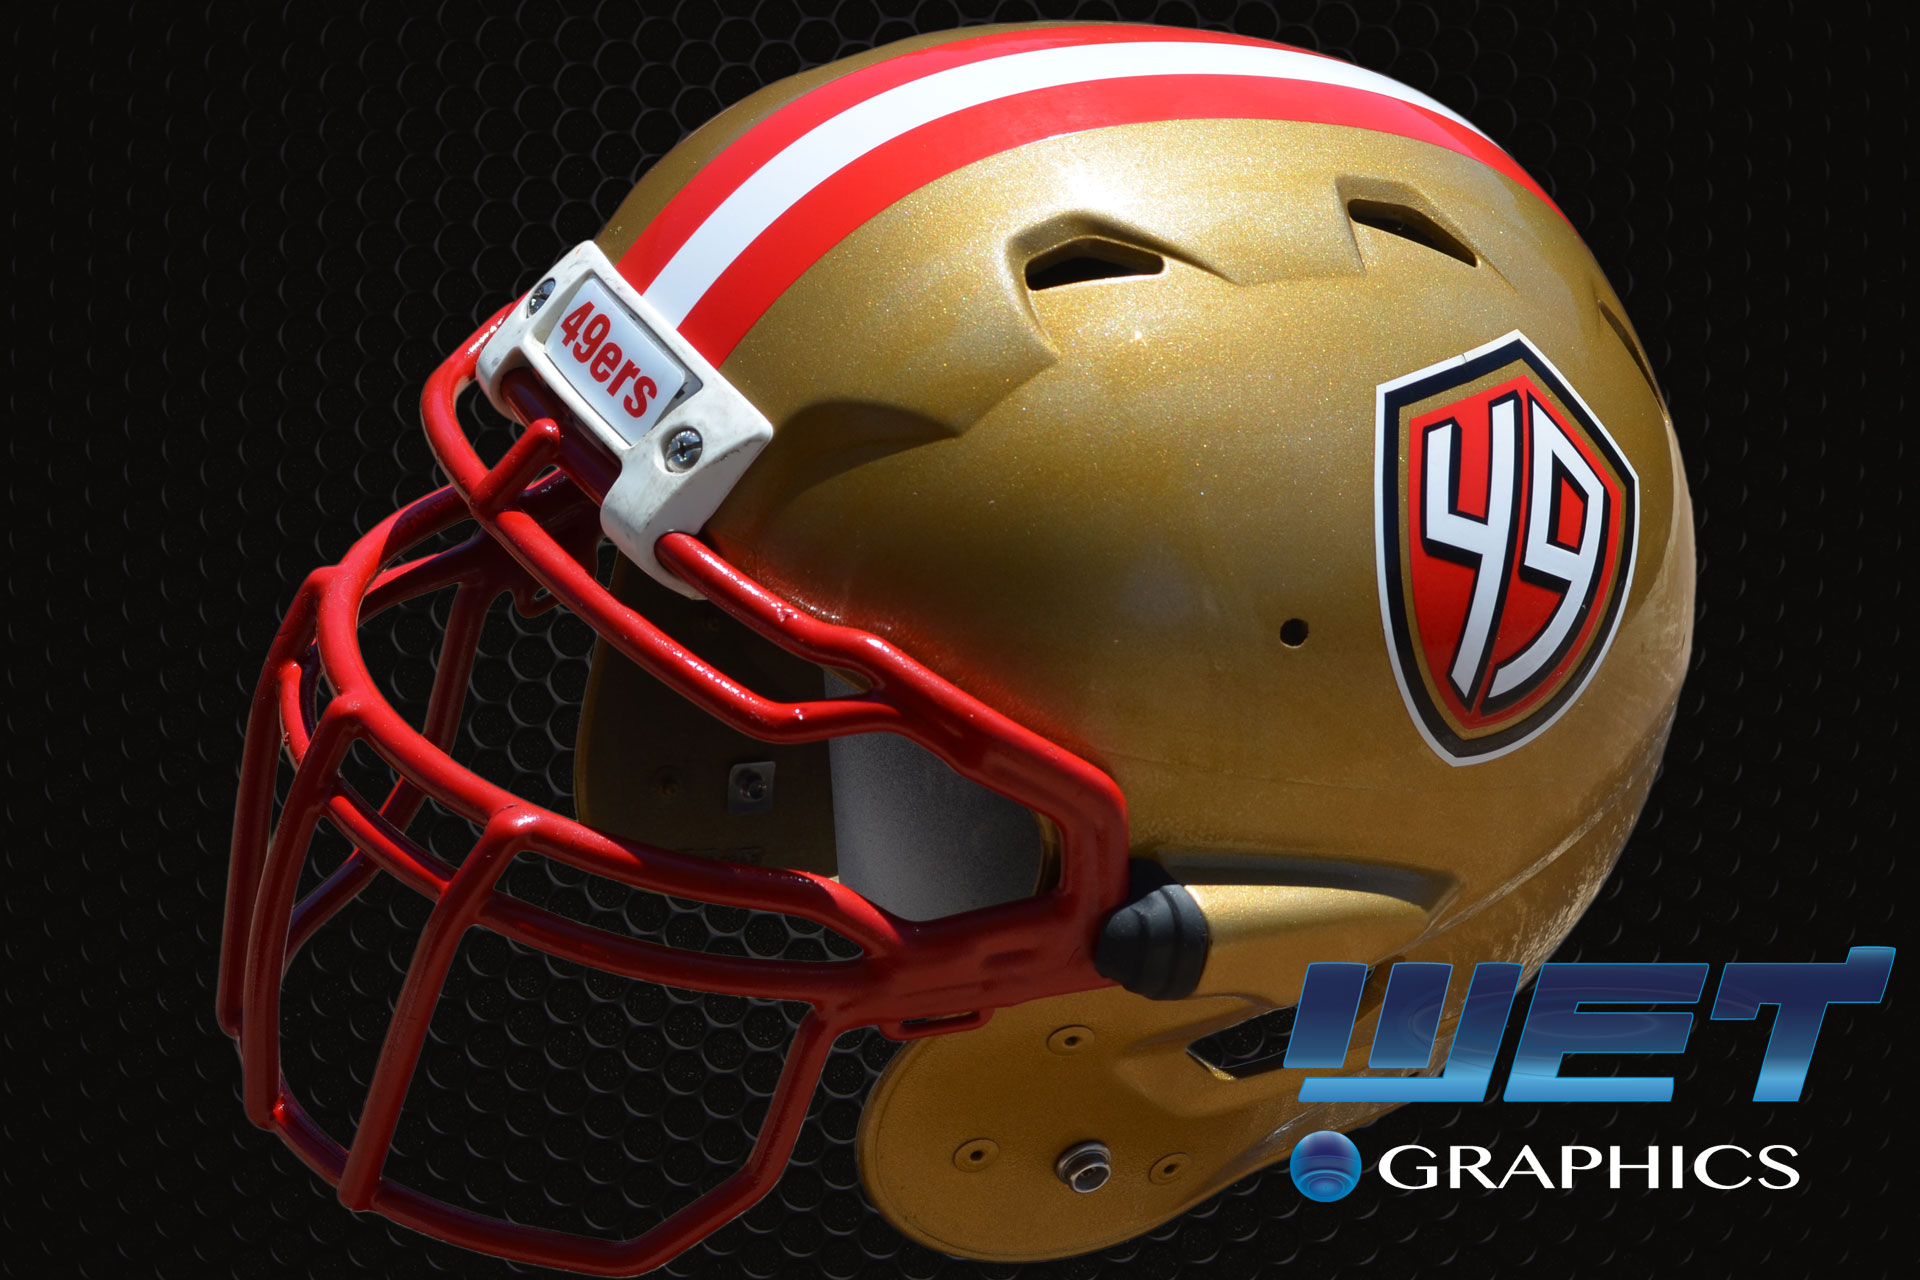 Football Helmet Vinyl Wraps : Ers custom painted football helmets wet graphics